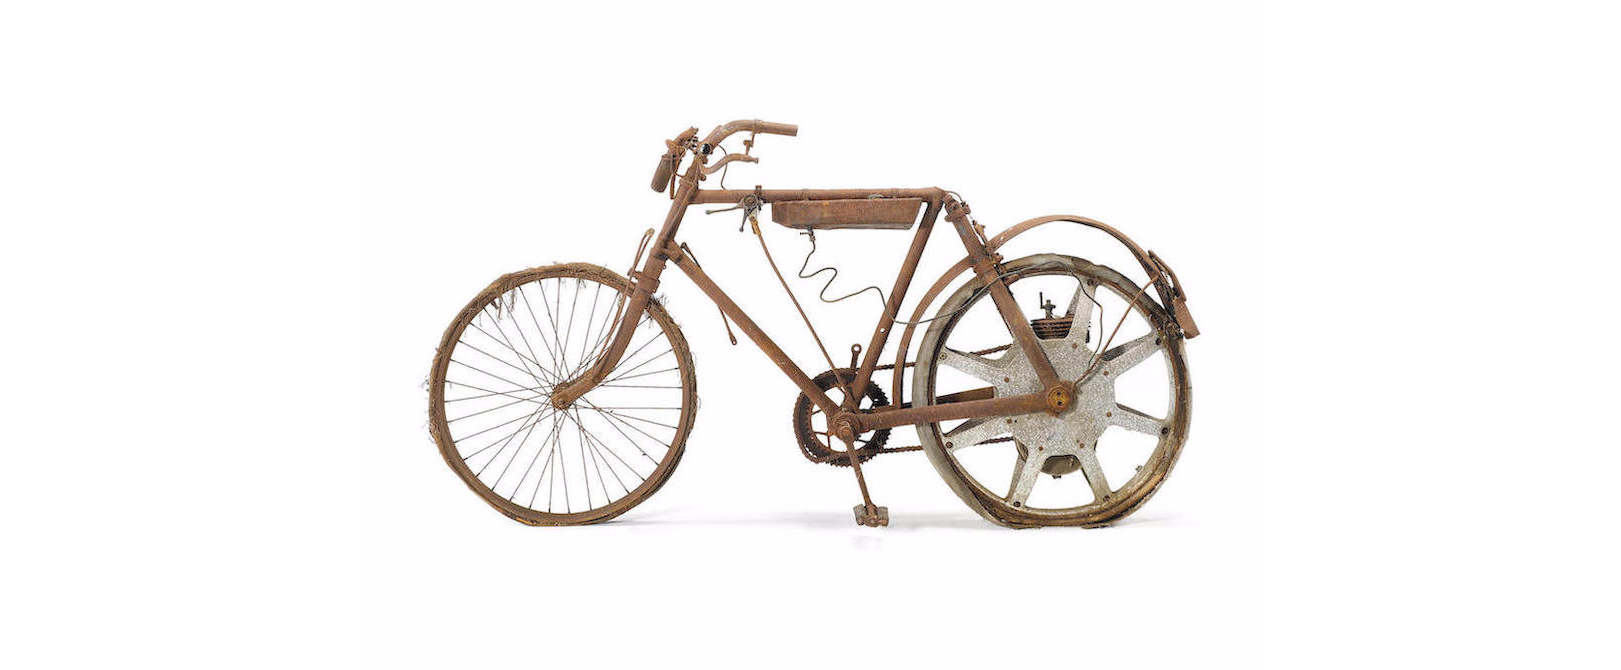 Century-old and rather rusty motor bicycle is heading to auction